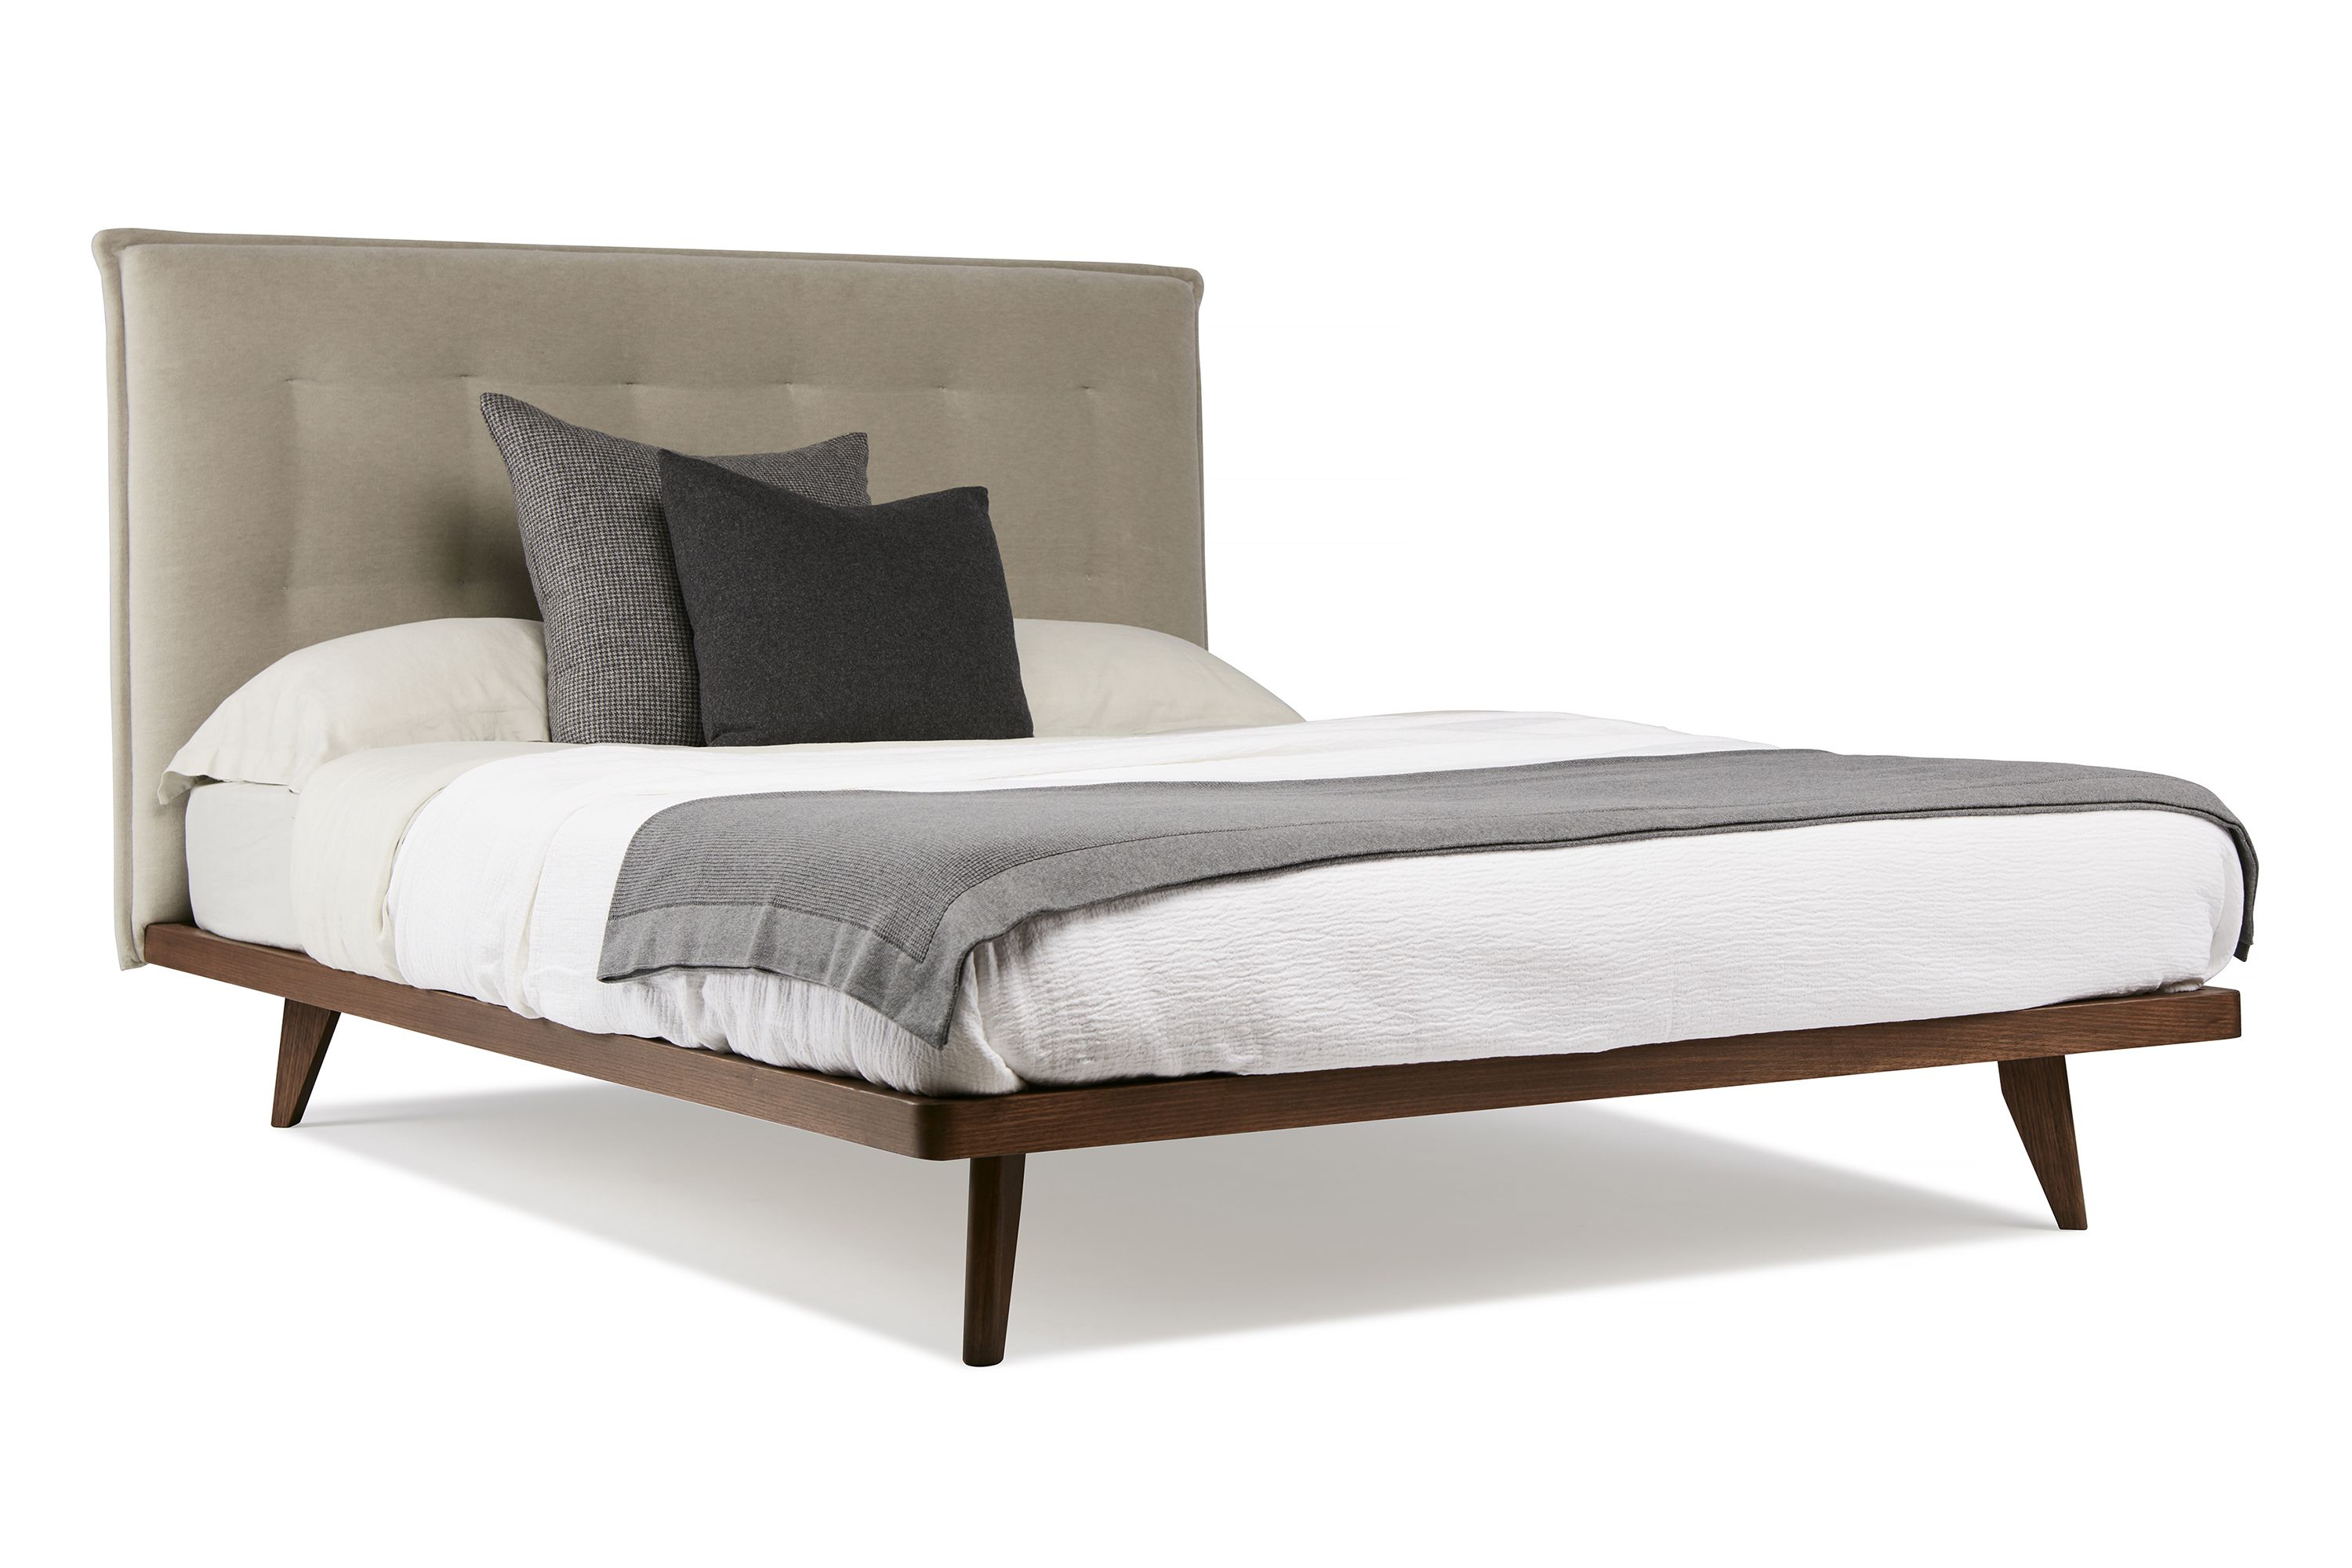 Austin Bed by Arthur G Upholstered Bed Head with Solid